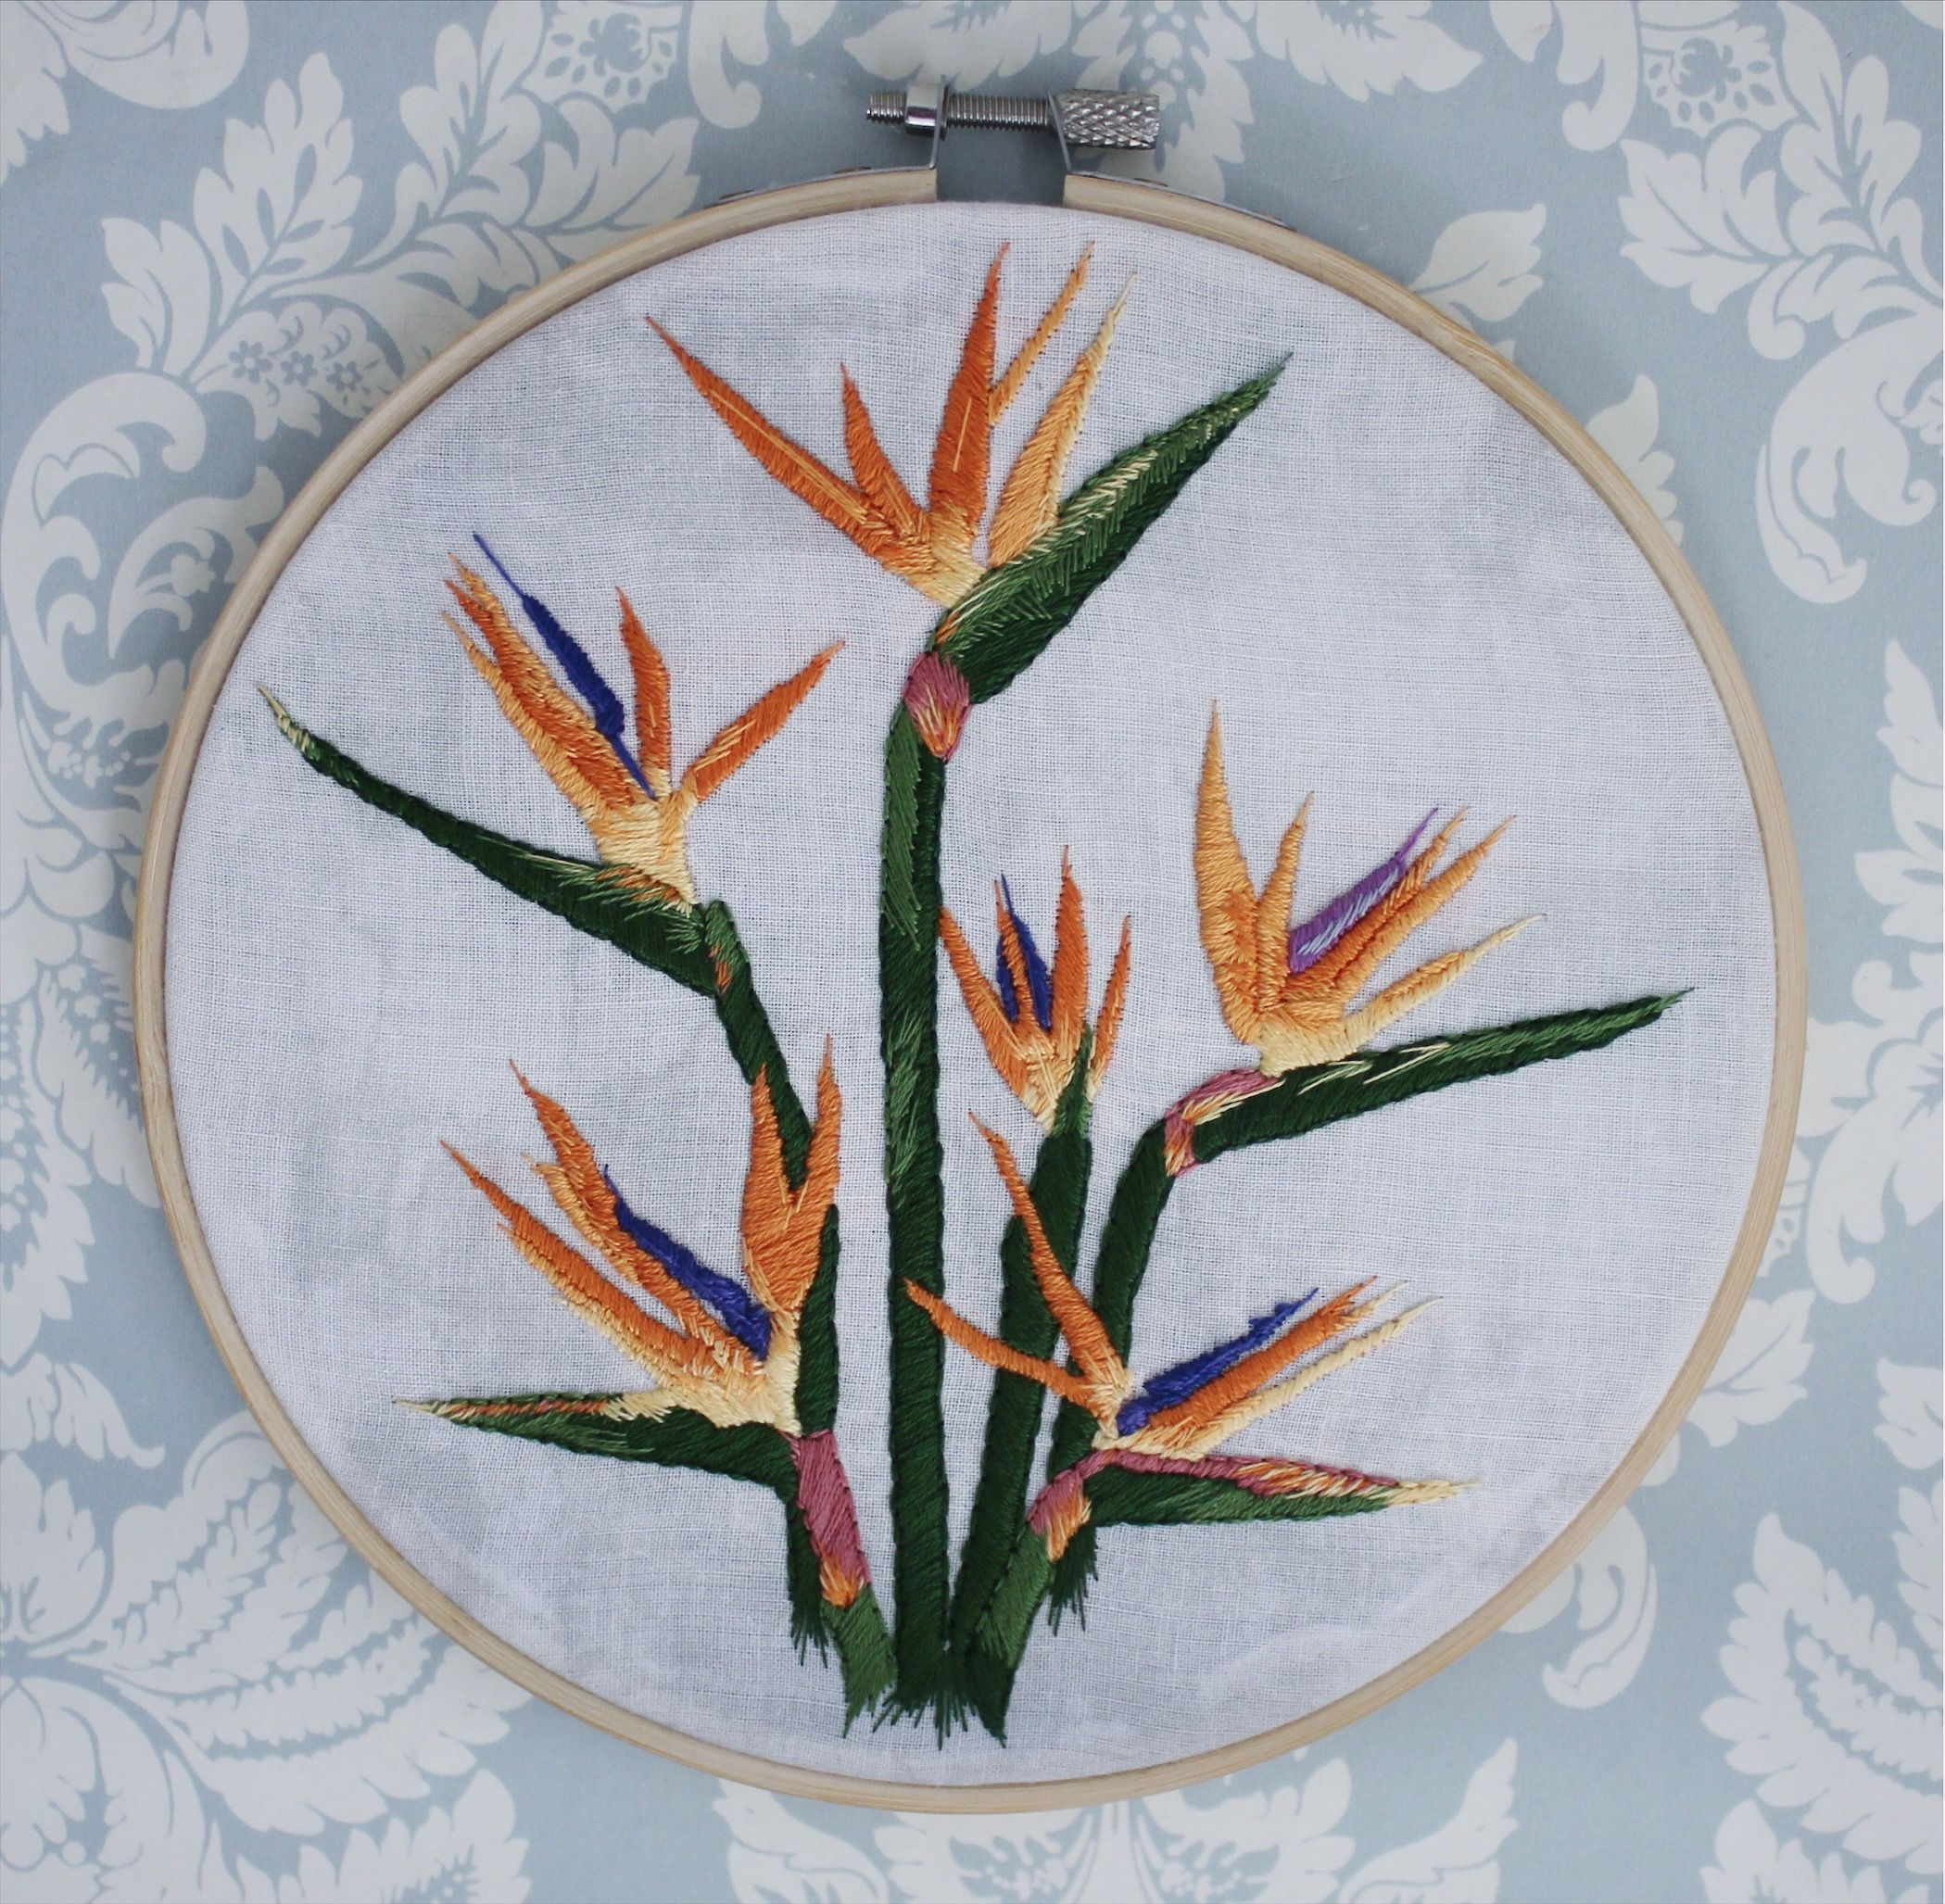 Birds Of Paradise Framed Embroidery Framed Embroidery Embroidery Embroidered Art